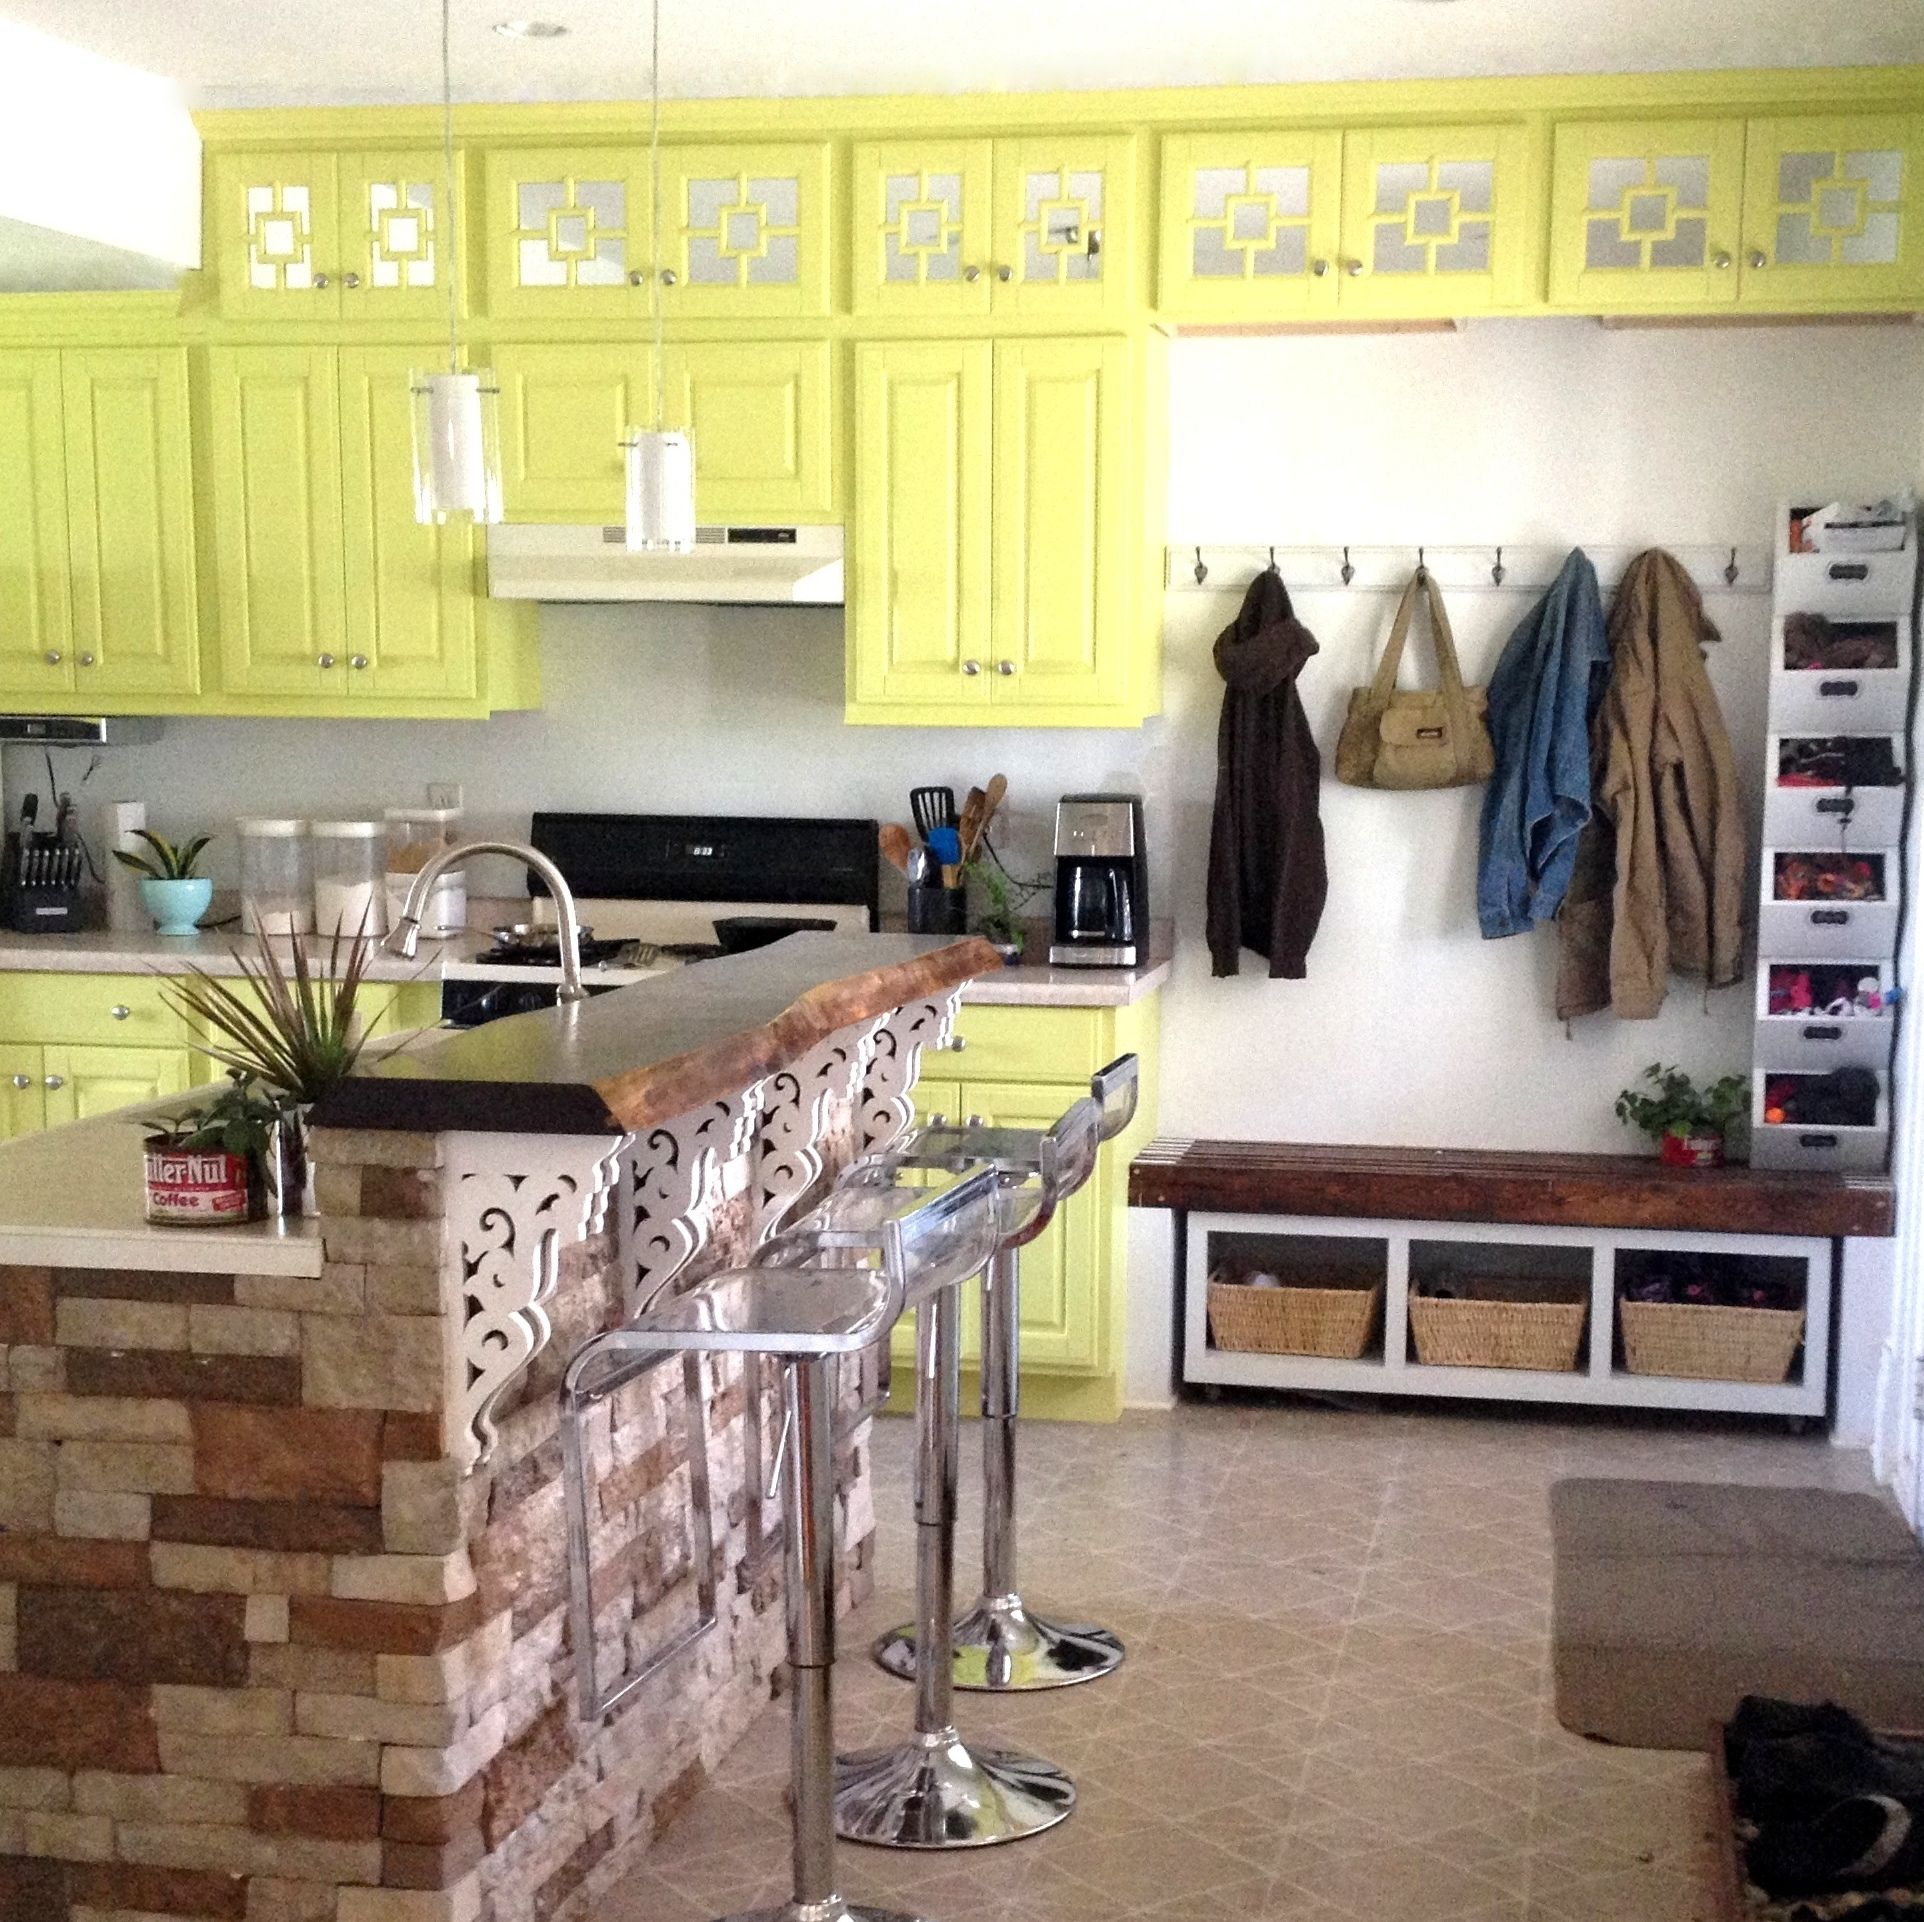 Extending Kitchen Cabinets Up To The Ceiling Reality Daydream Cabinets To Ceiling Kitchen Cabinets To Ceiling New Kitchen Cabinets